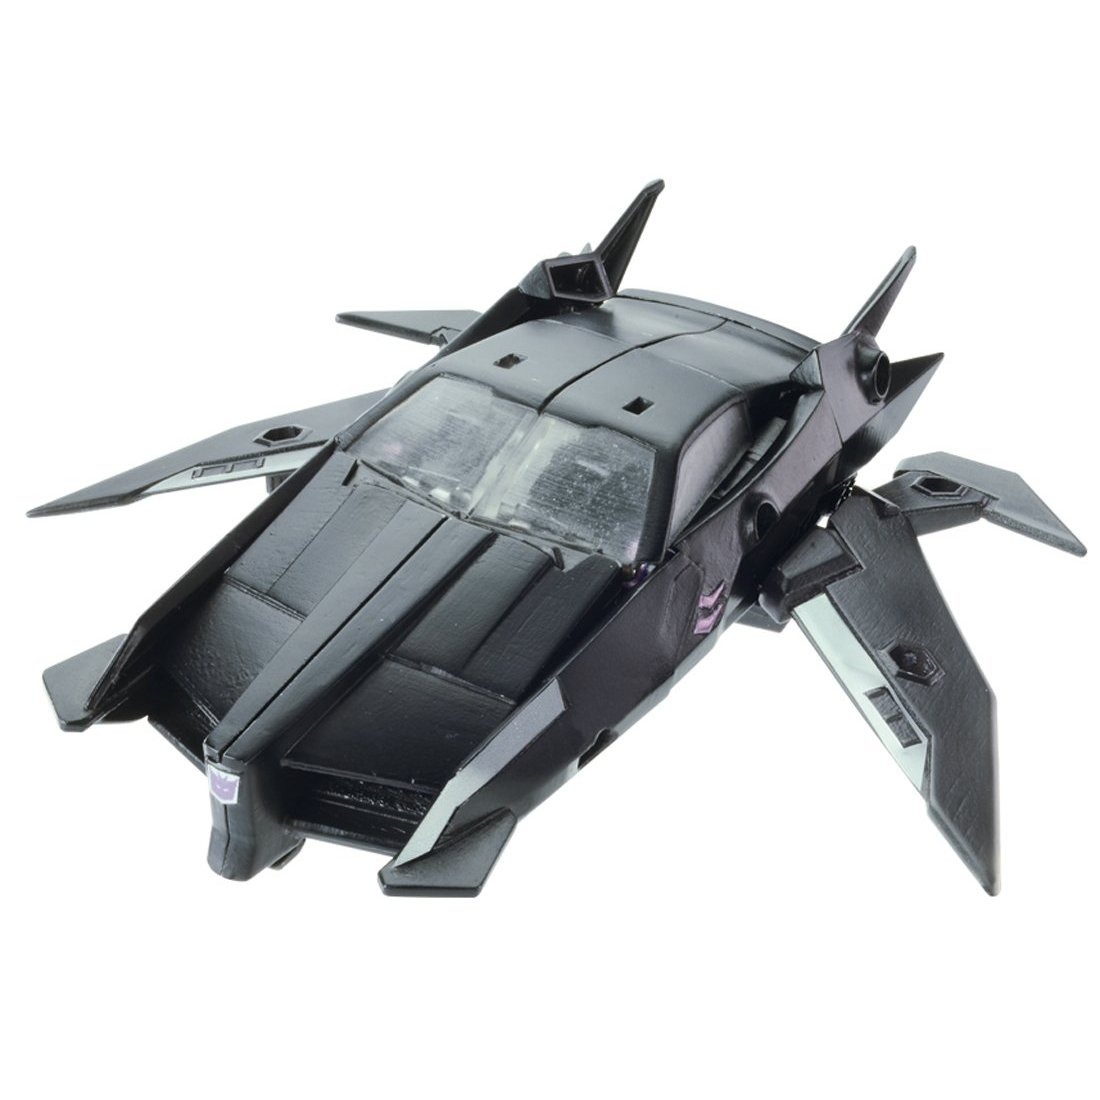 Vehicon (Jet) with Igu jetvehicon03